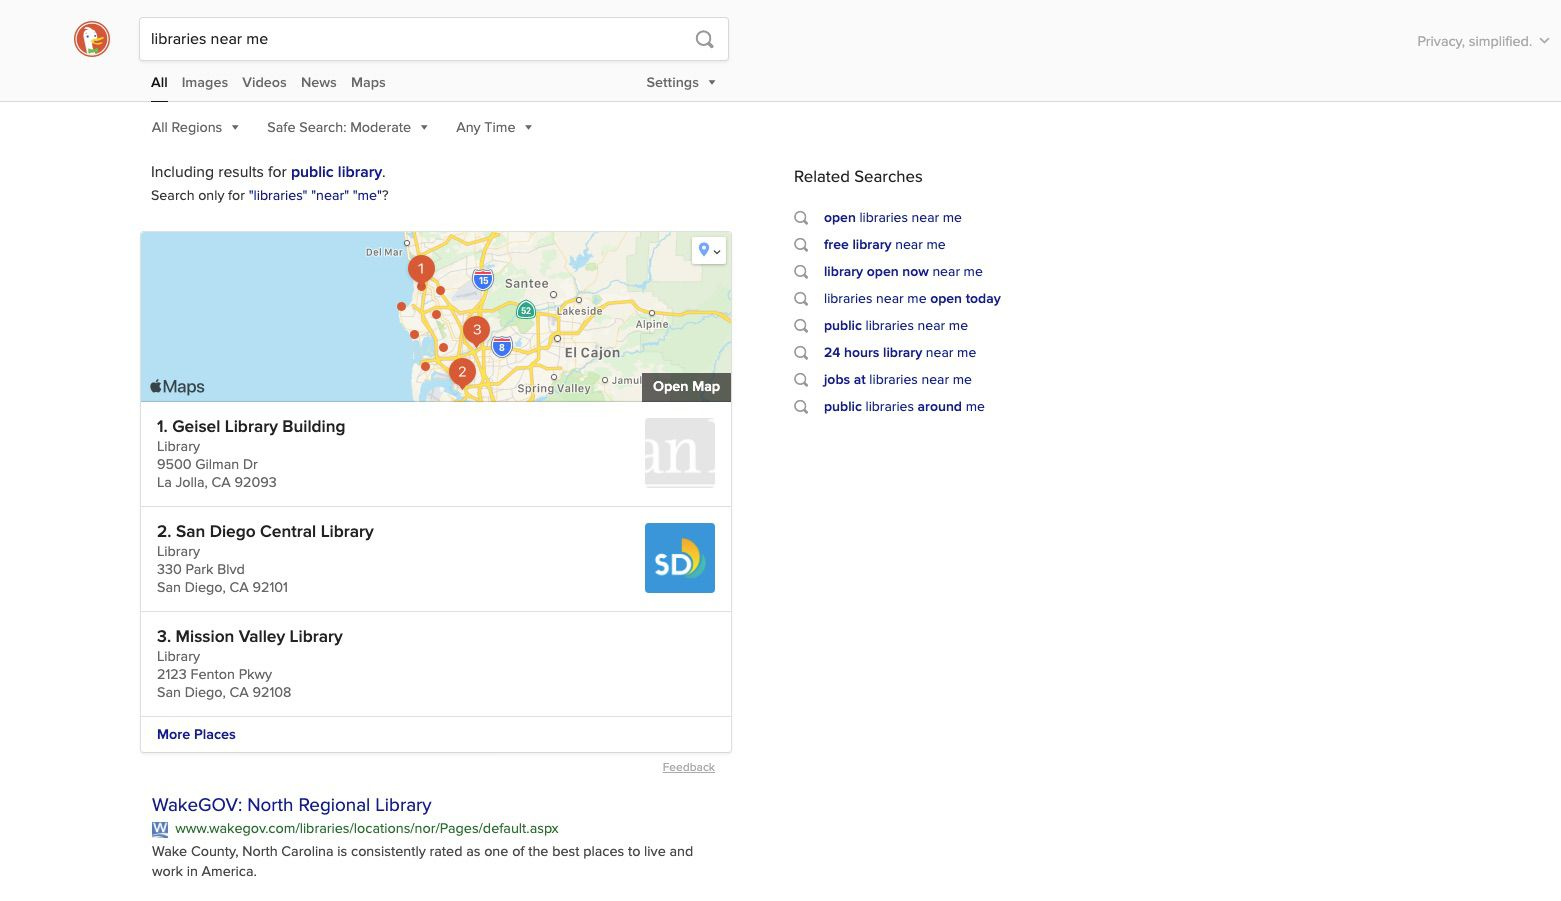 Select from your search results and find directions as usual.